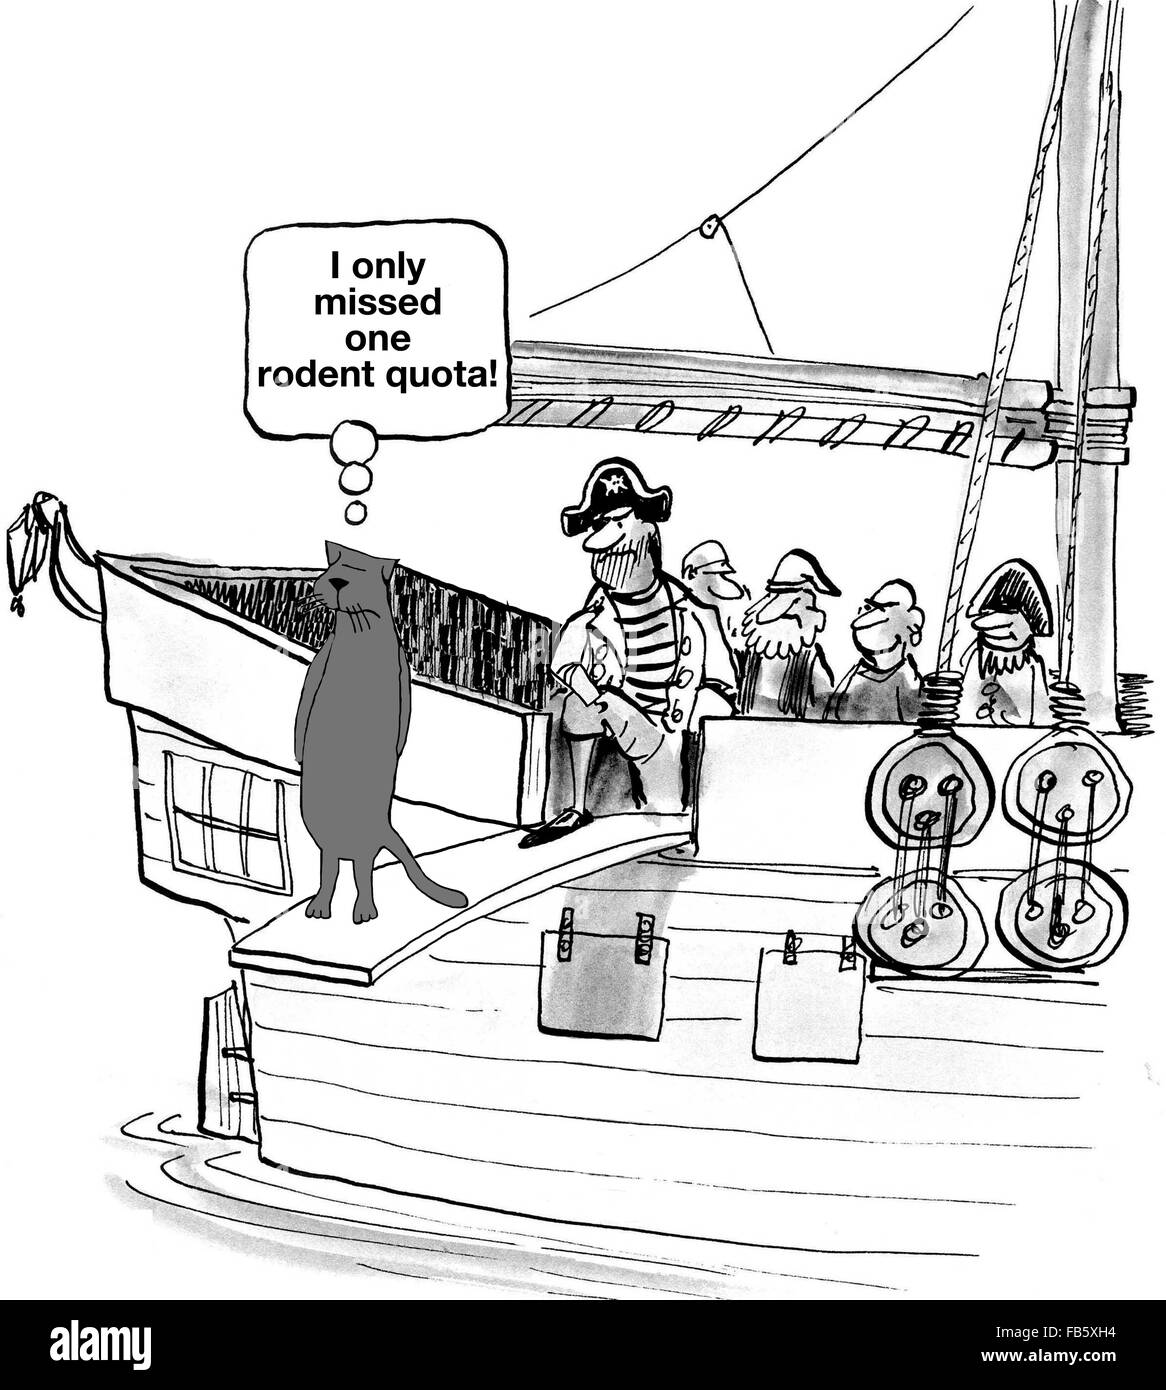 Business cartoon about sales.  The pirate is making the business cat walk the plank since he missed his quota. - Stock Image